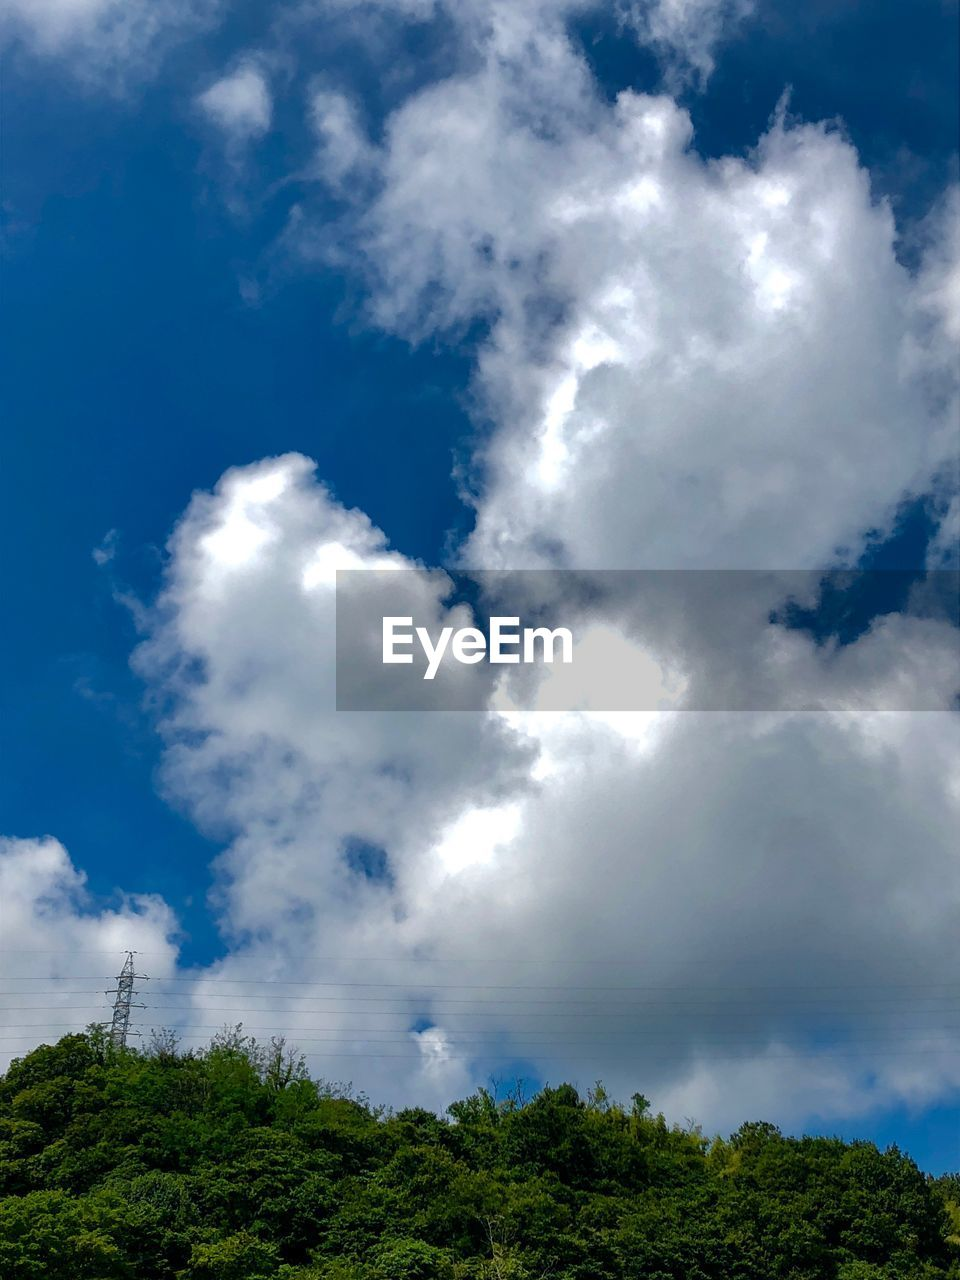 sky, cloud - sky, plant, tree, low angle view, beauty in nature, nature, tranquil scene, day, tranquility, growth, no people, scenics - nature, blue, green color, outdoors, non-urban scene, idyllic, sunlight, environment